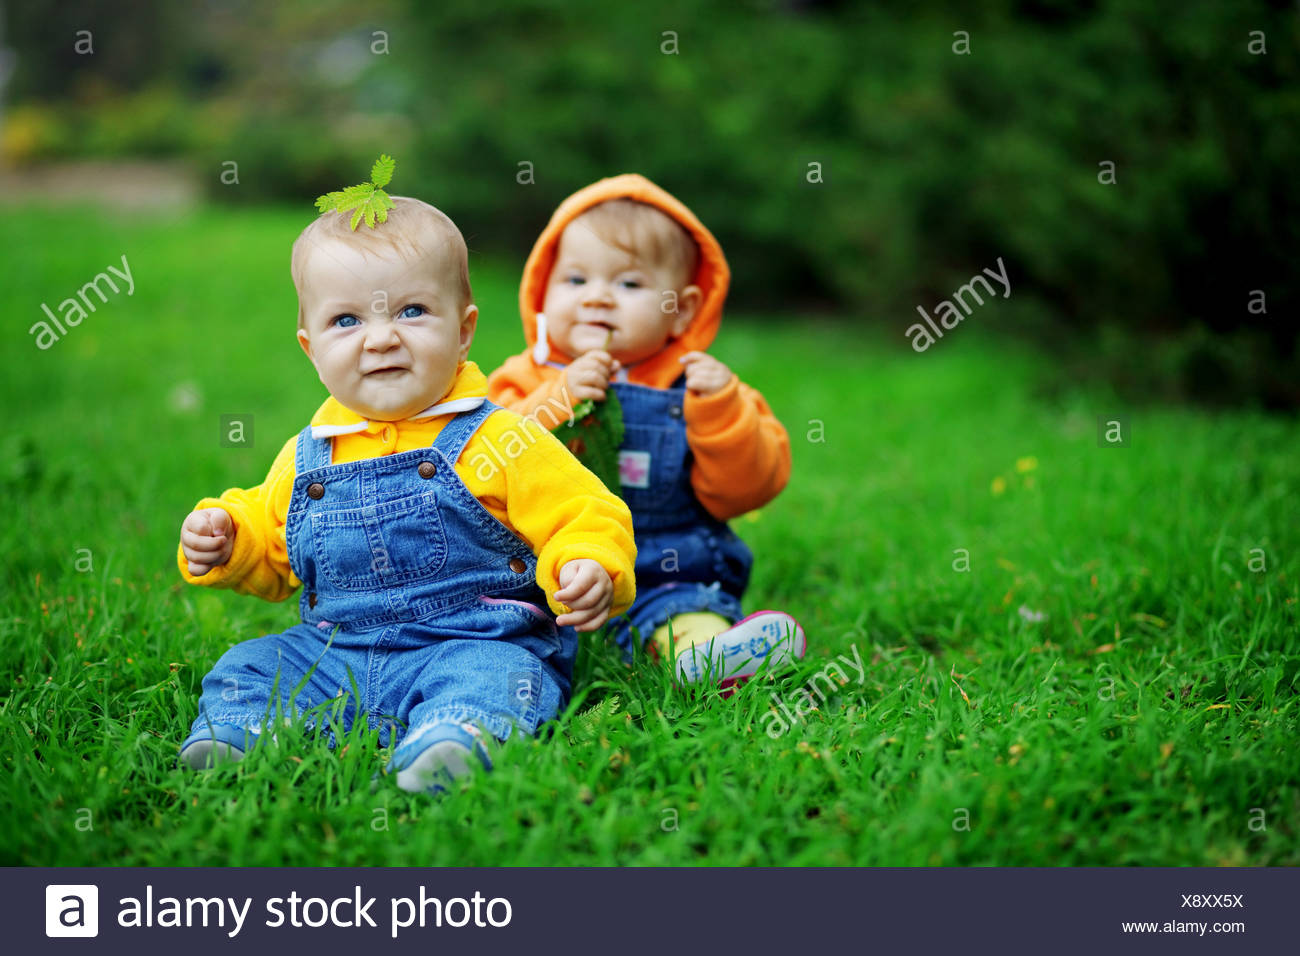 Cute Twins Babies Sitting On Stock Photos Cute Twins Babies